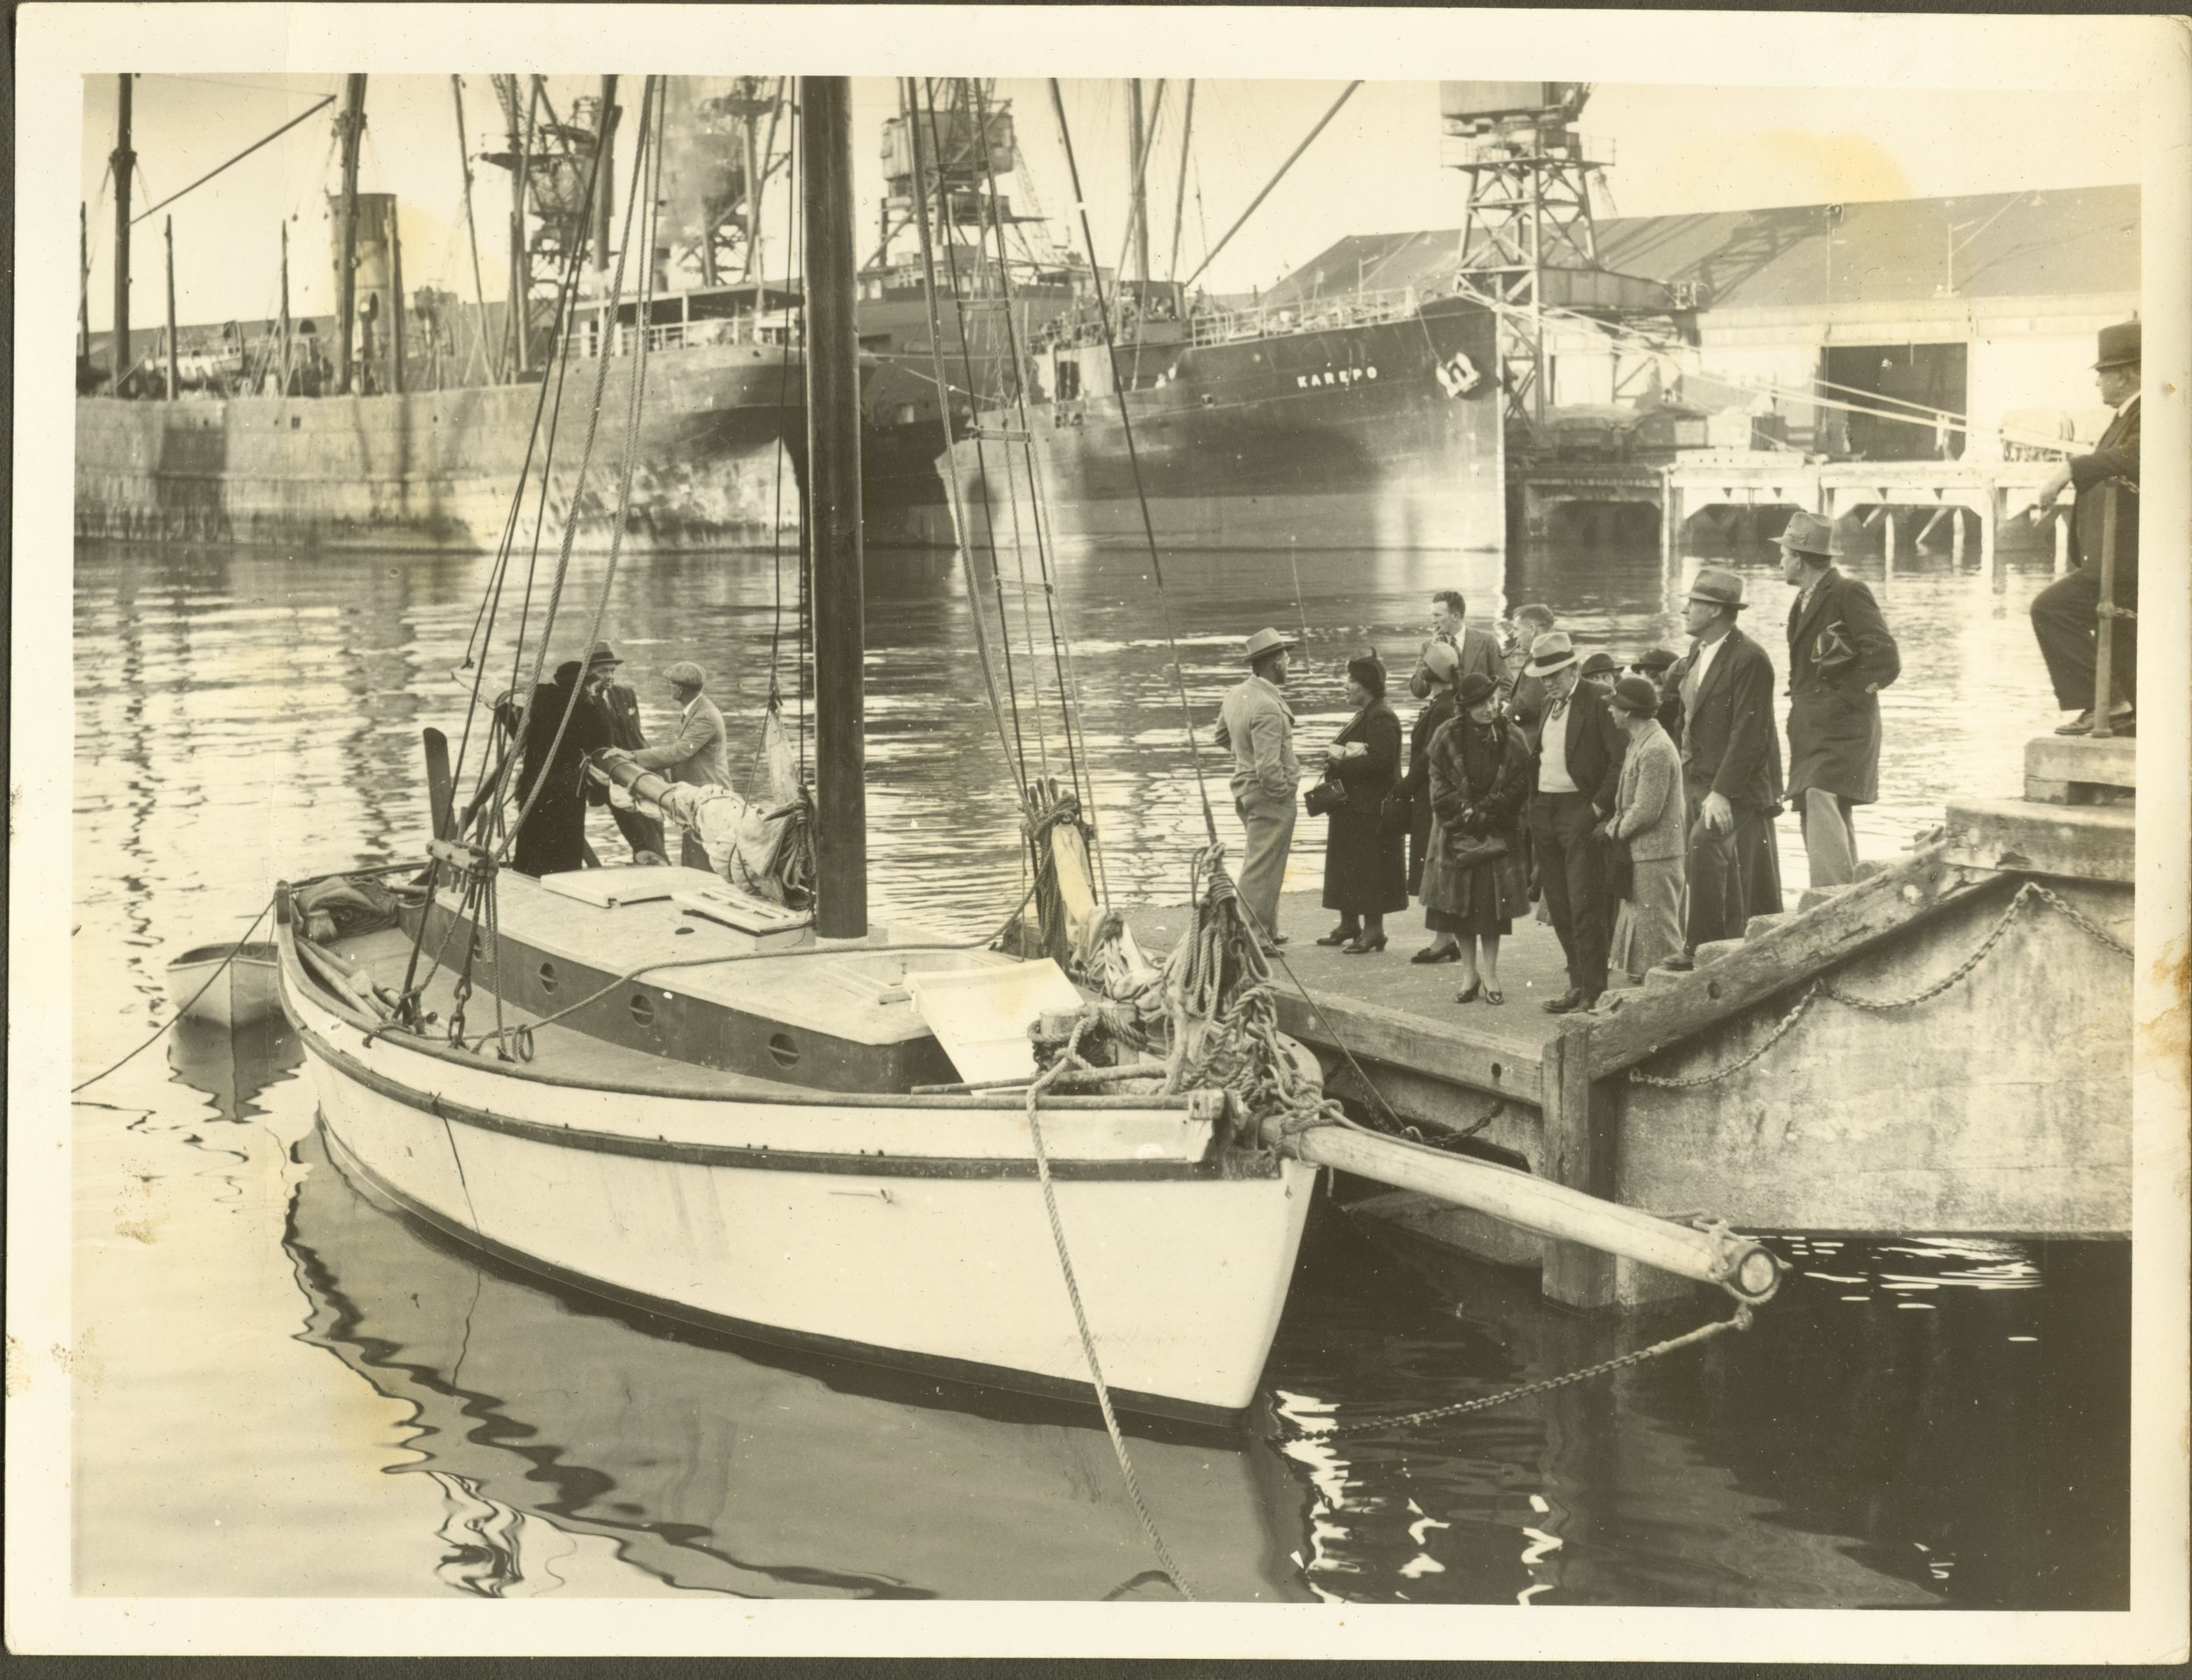 8. Ngataki alongside warf with a wecoming party attending - Copy.jpg